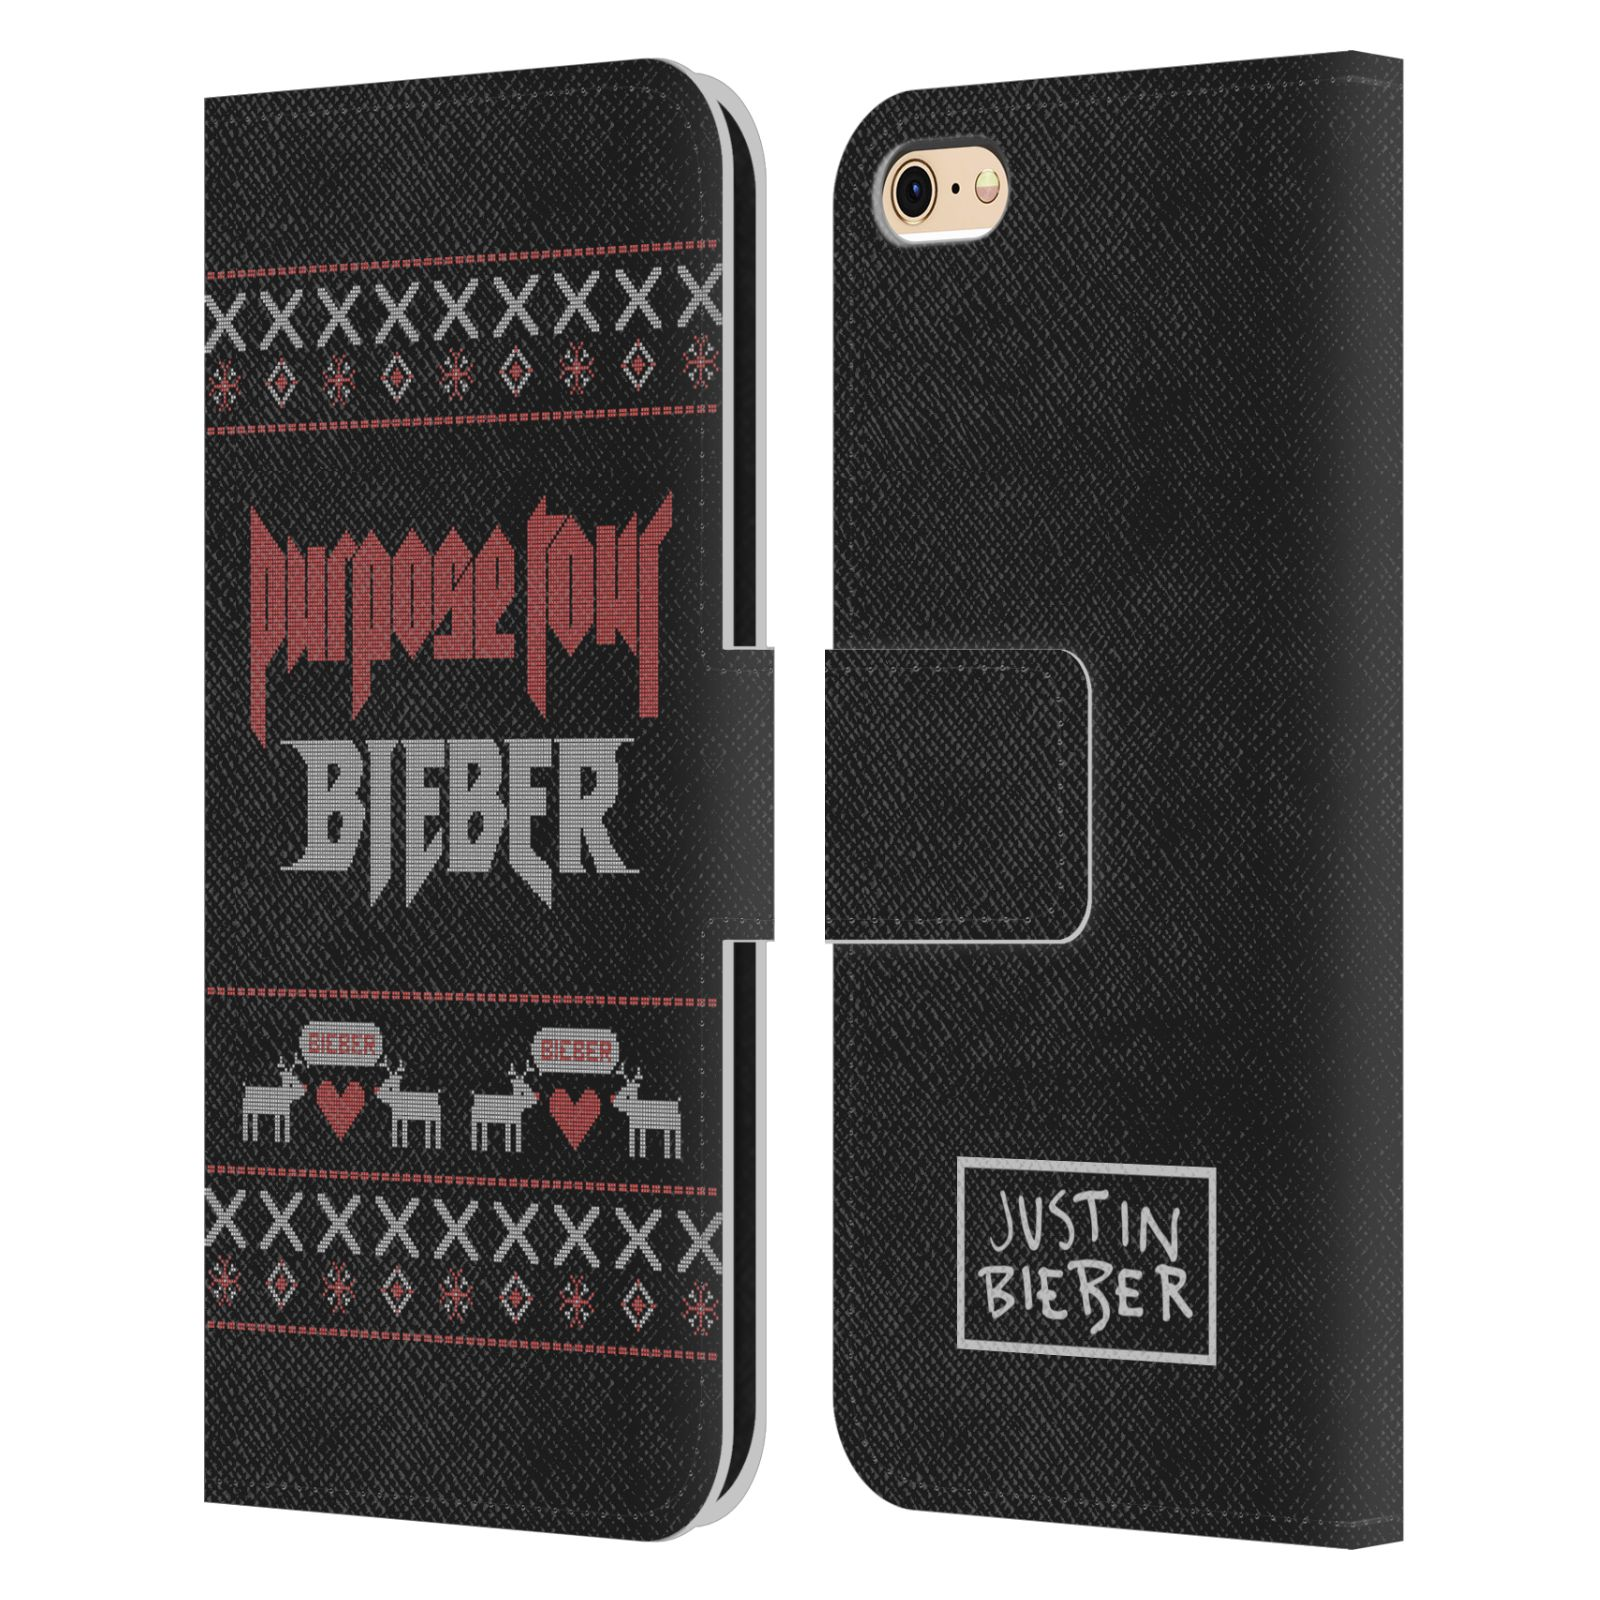 JUSTIN-BIEBER-KNITTED-CHRISTMAS-LEATHER-BOOK-WALLET-CASE-FOR-APPLE-iPHONE-PHONES